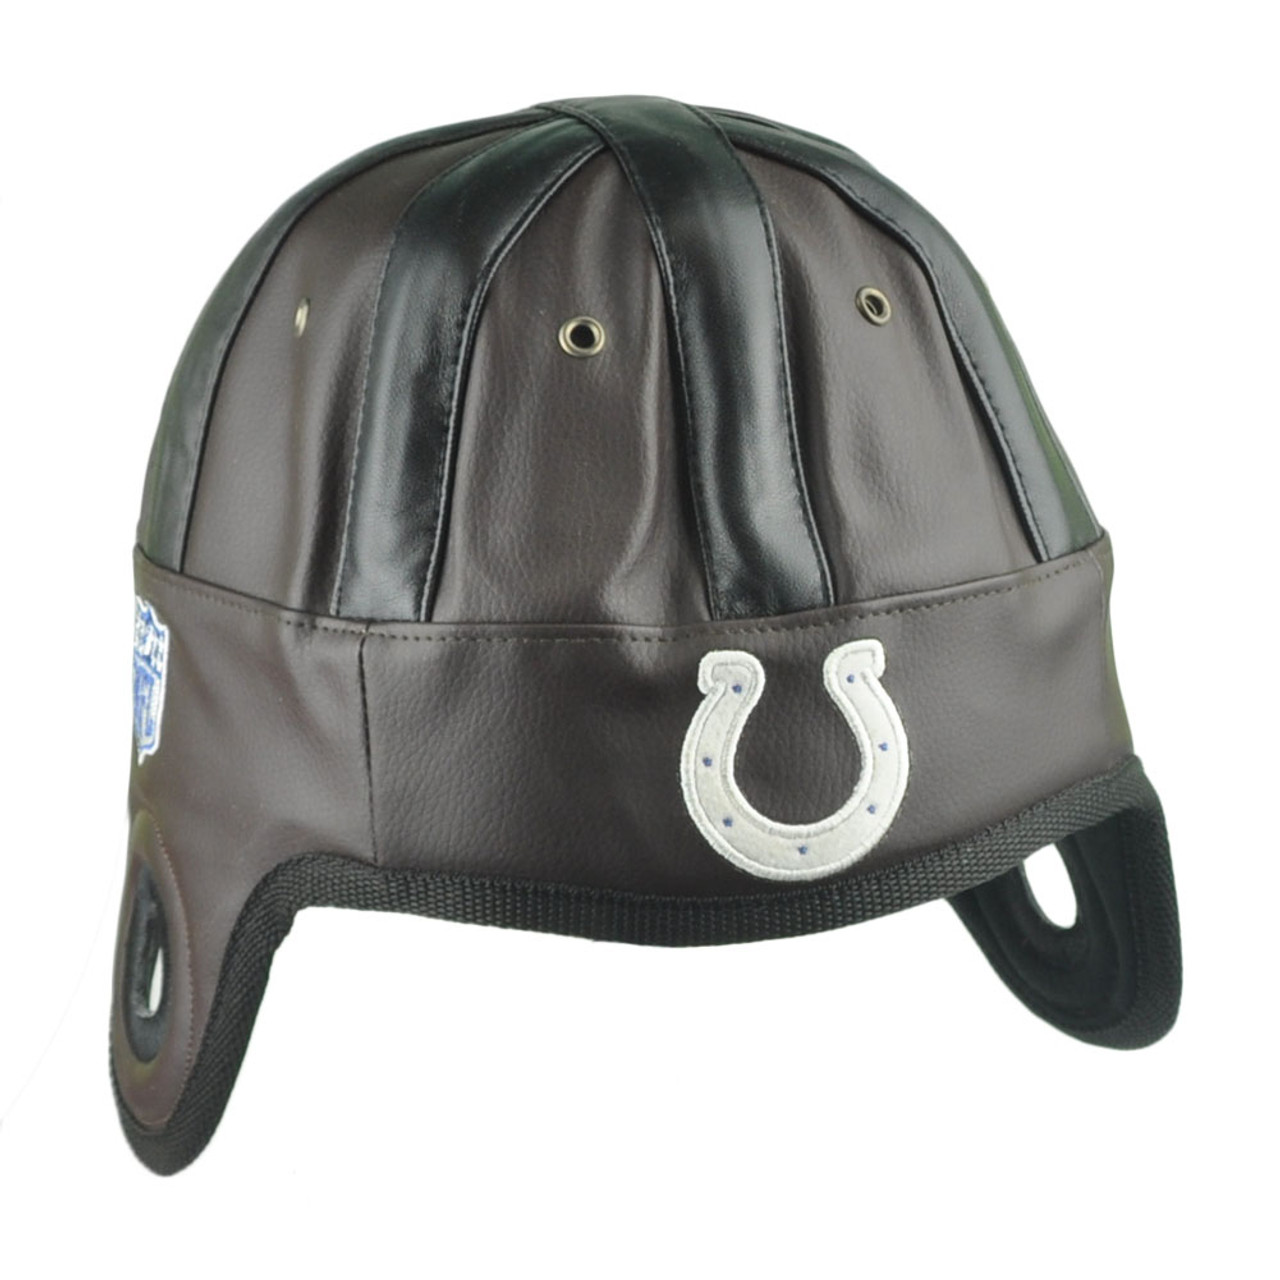 NFL Reebok Indianapolis Colts Faux Leather Helmet Head Hat Cap Game Day  Brown - Cap Store Online.com a24eeaf80dd4